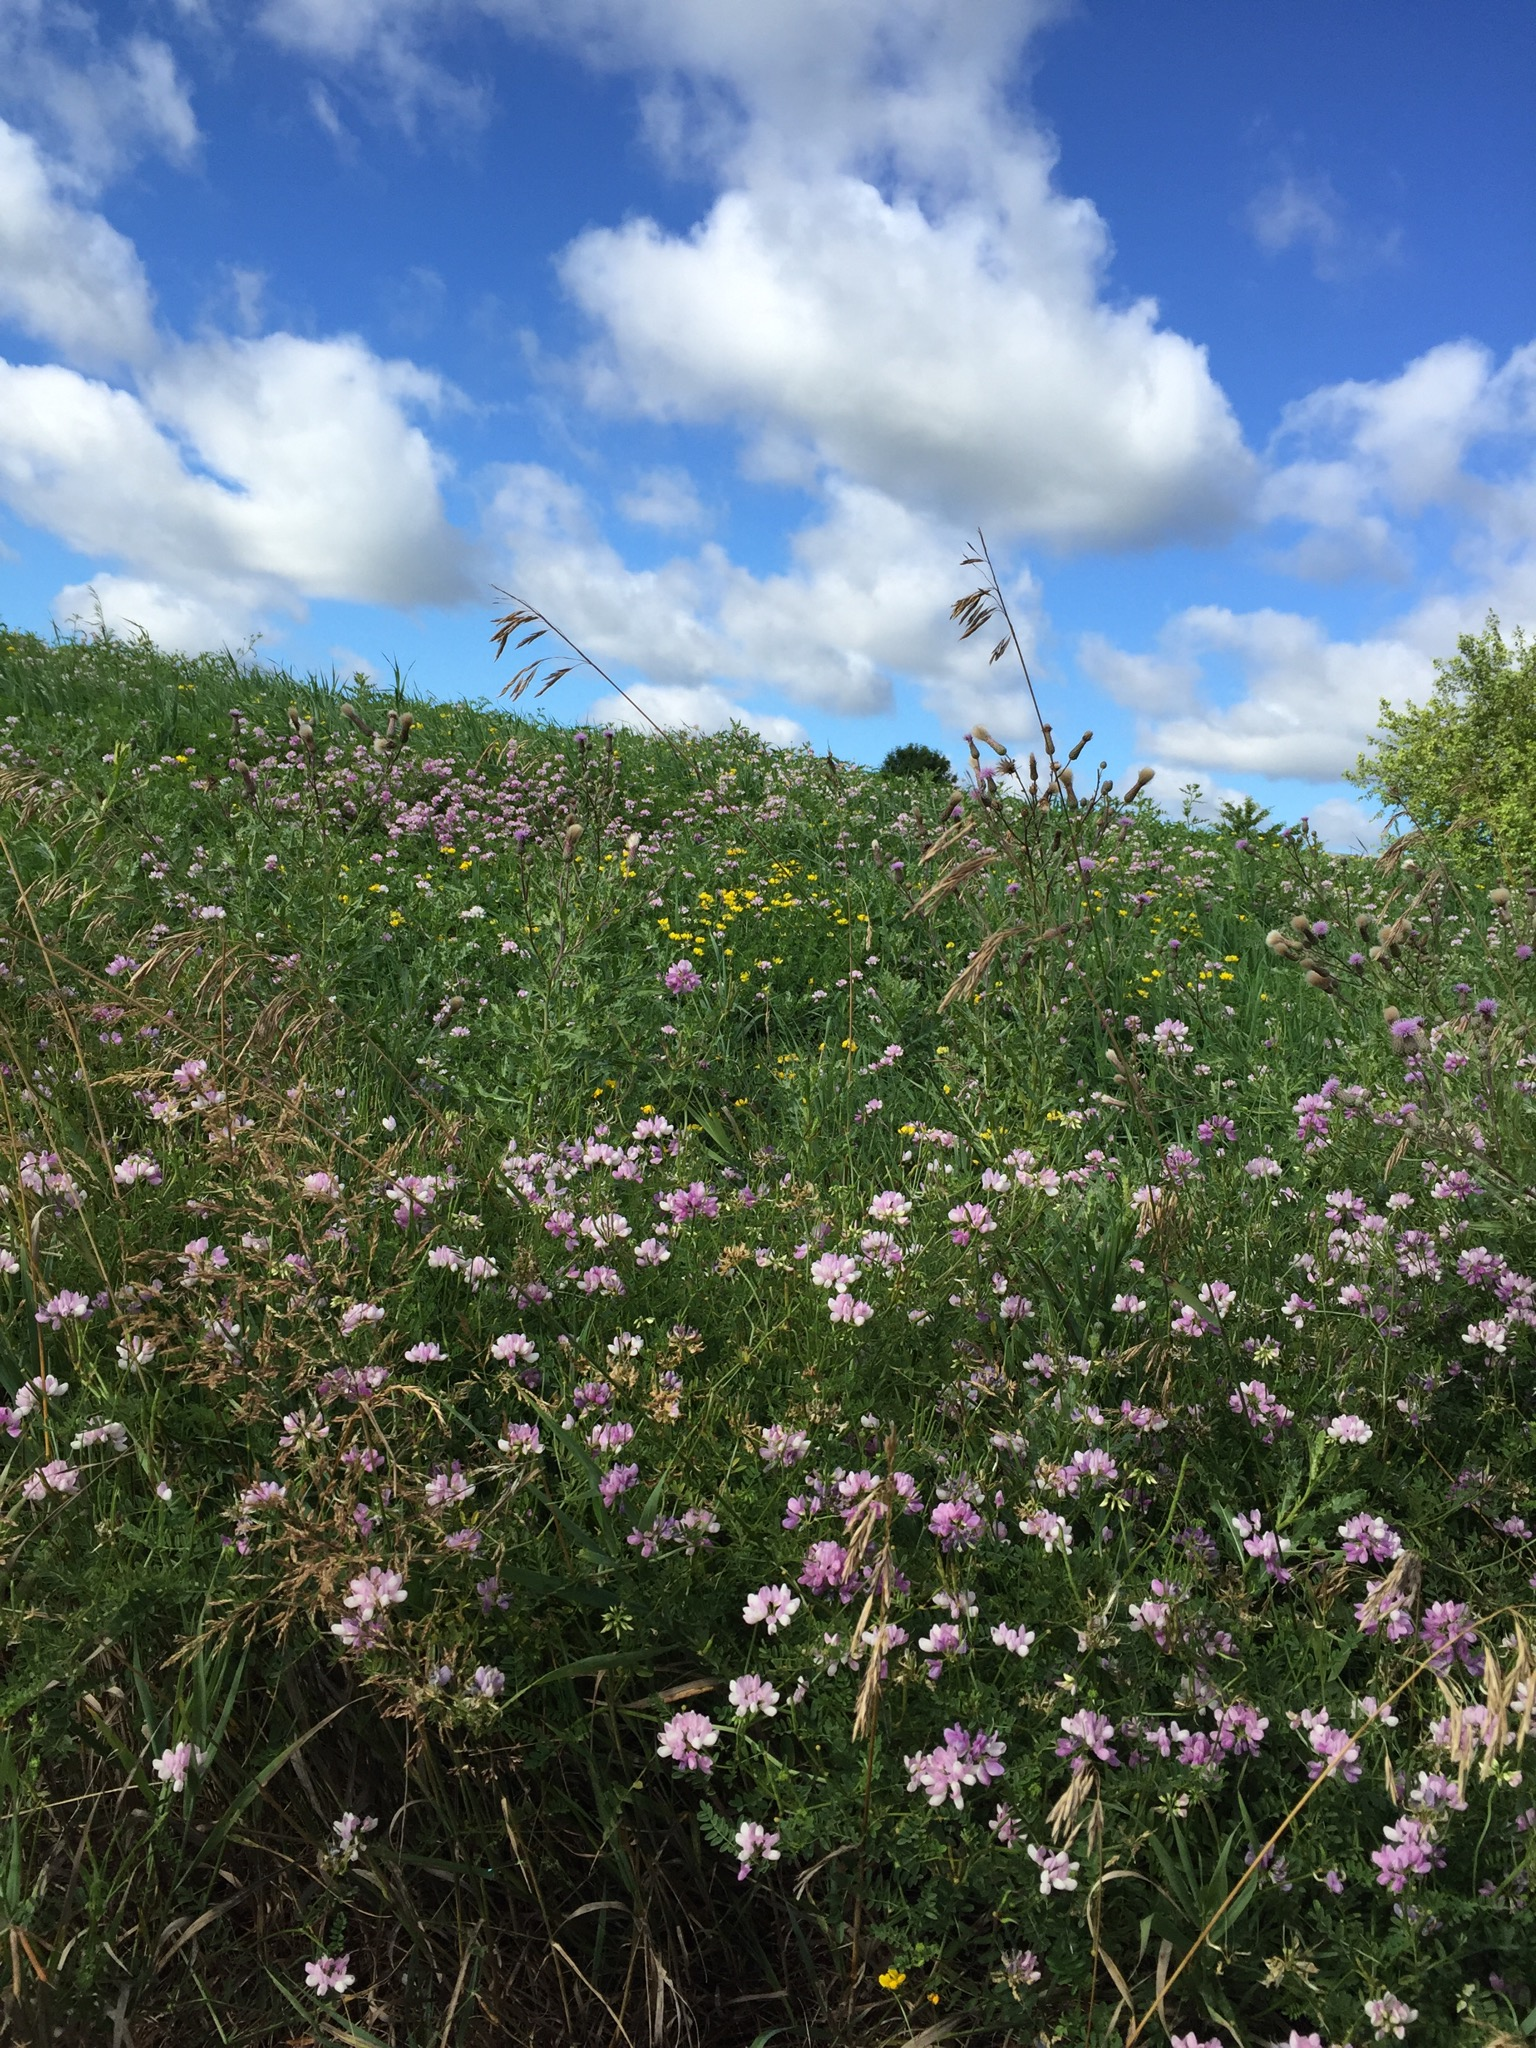 Crown vetch meets blue sky. Photo: Leticia Shaddix